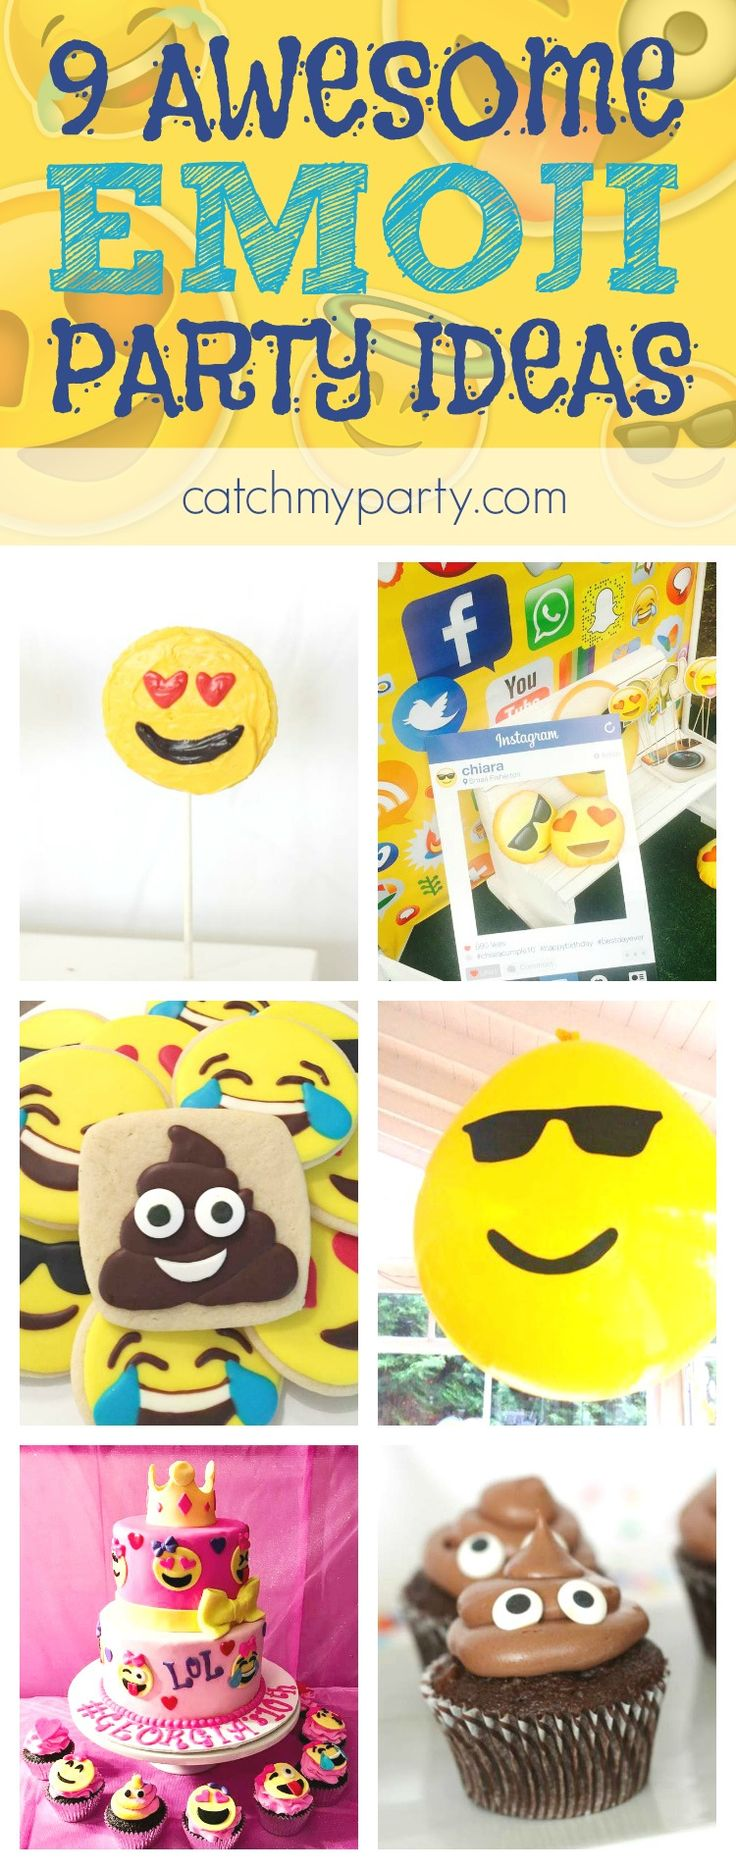 9 awesome Emoji party ideas including ideas for cakes, cupcakes, decorations, party favors, etc. | See more party ideas and share yours at CatchMyparty.com